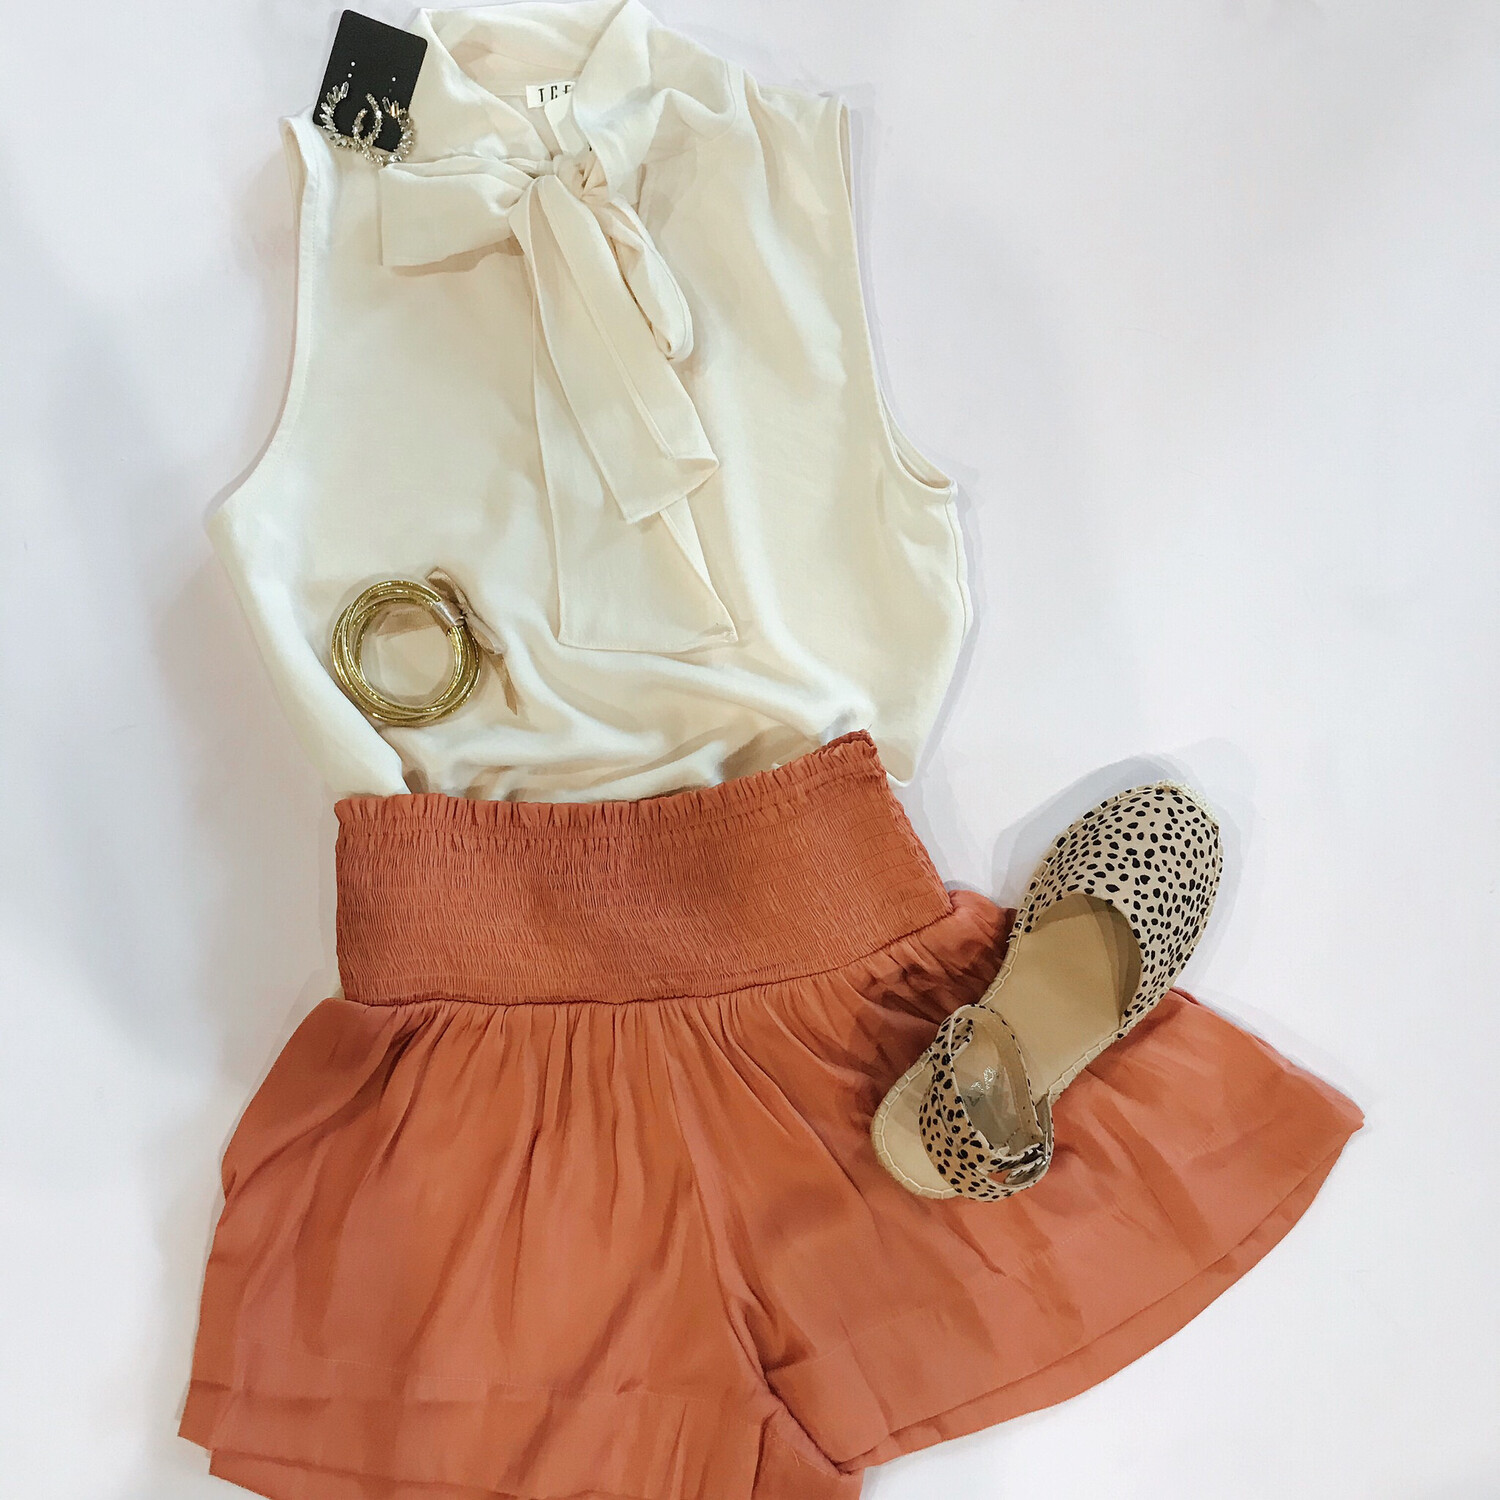 Terra-cotta Silky Short